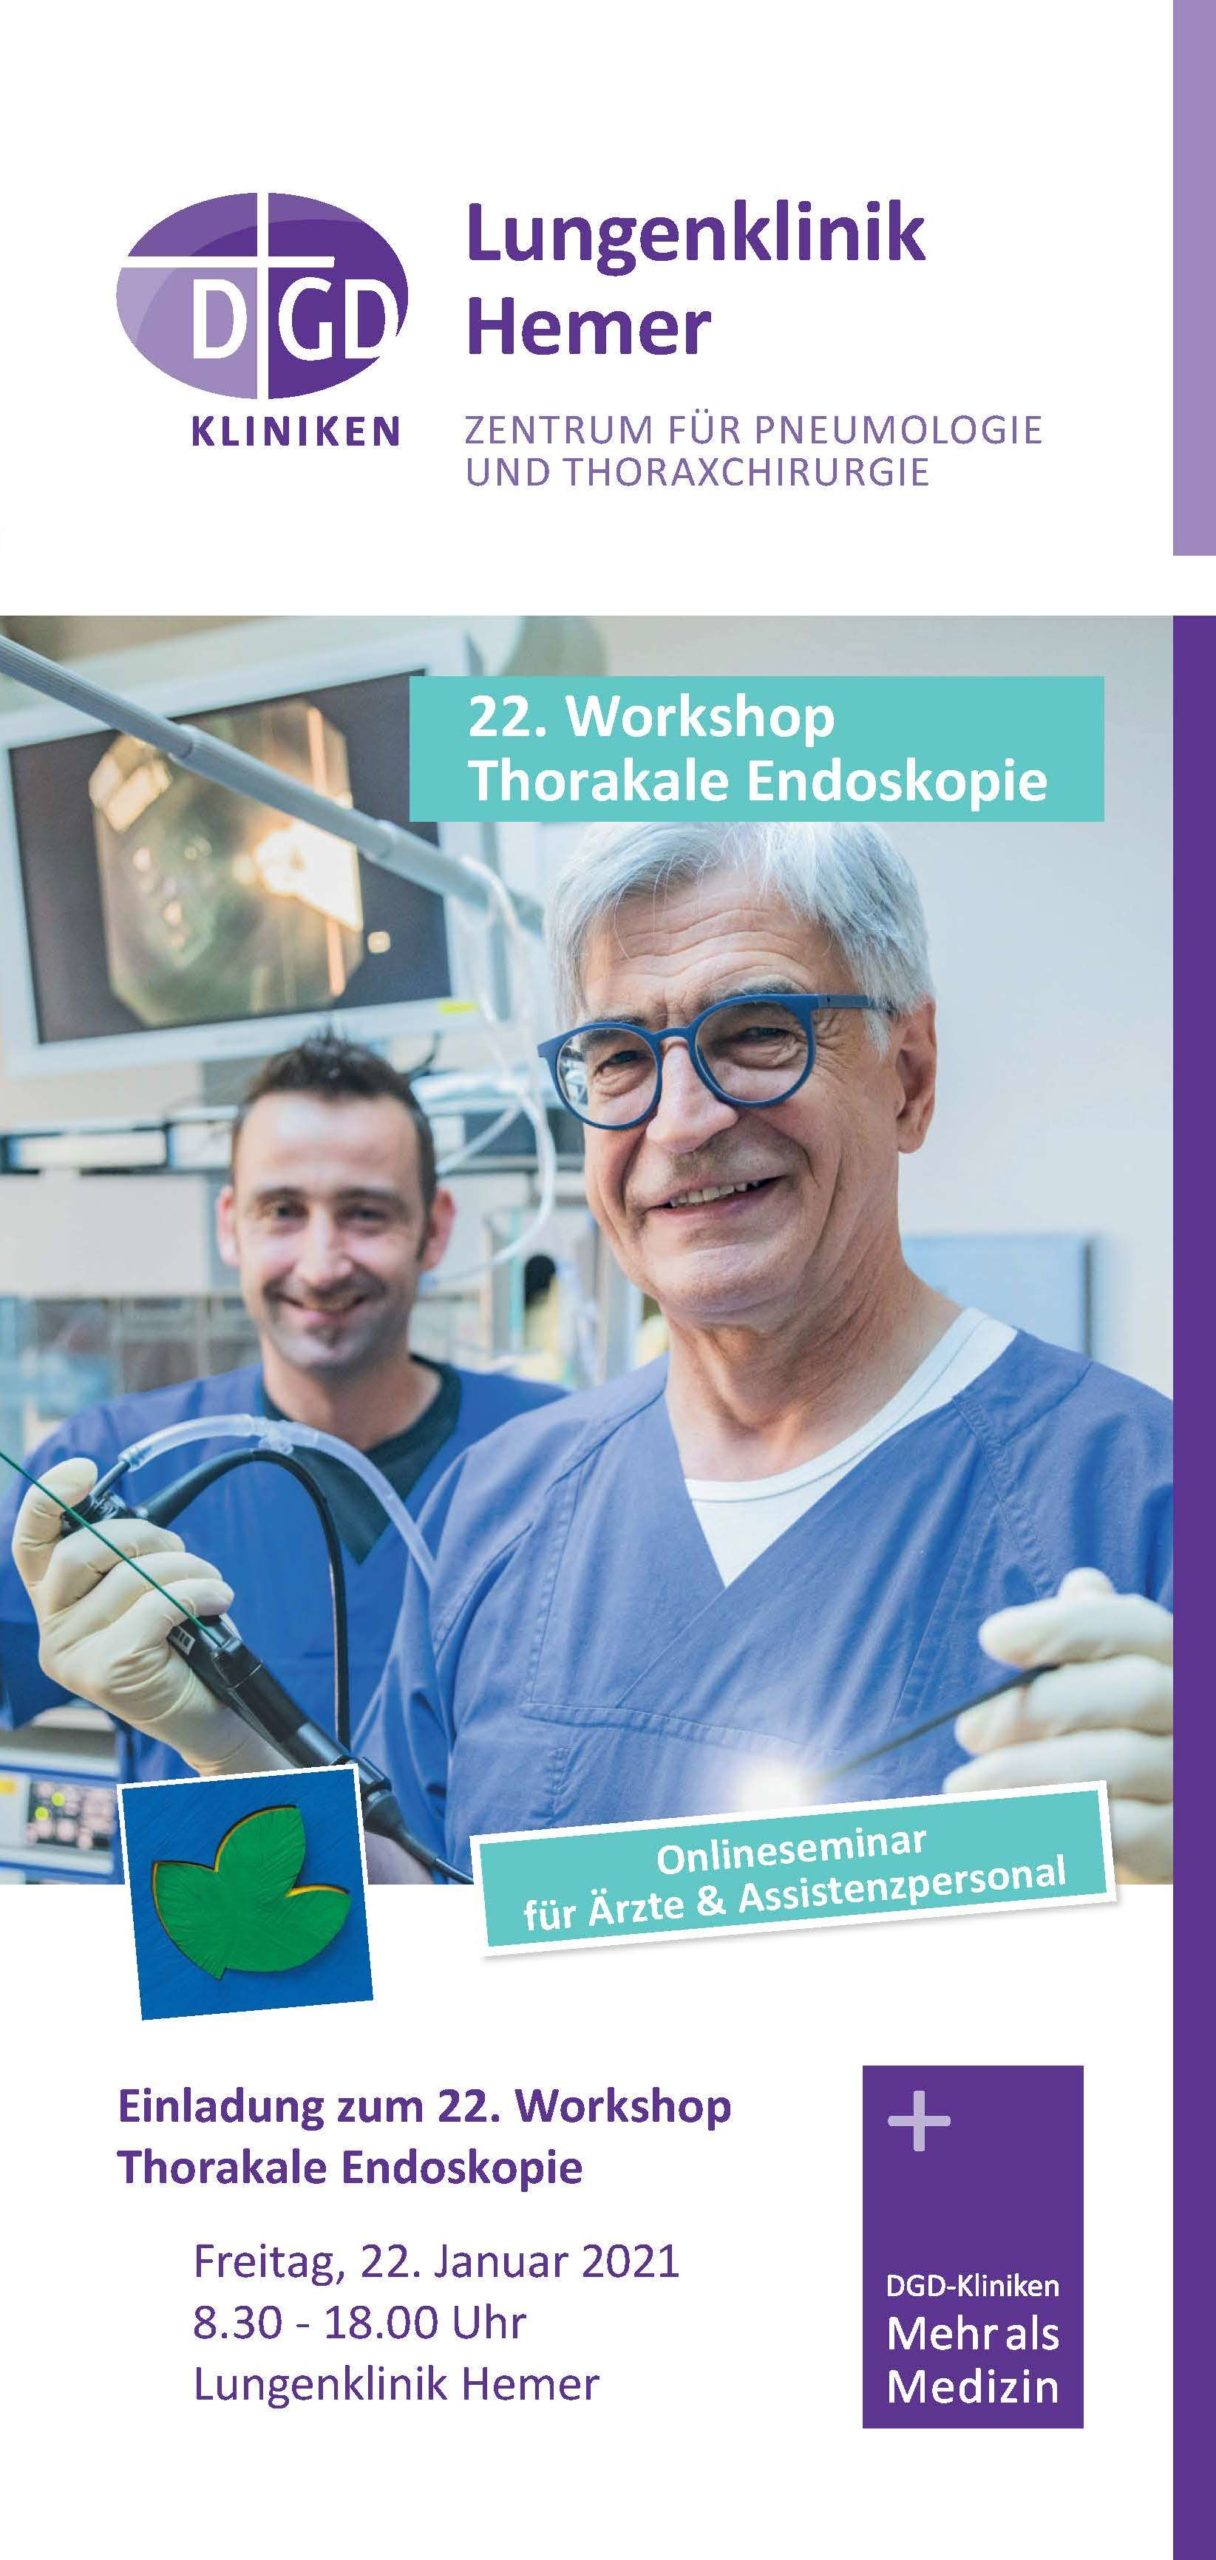 22. Workshop Thorakale Endoskopie